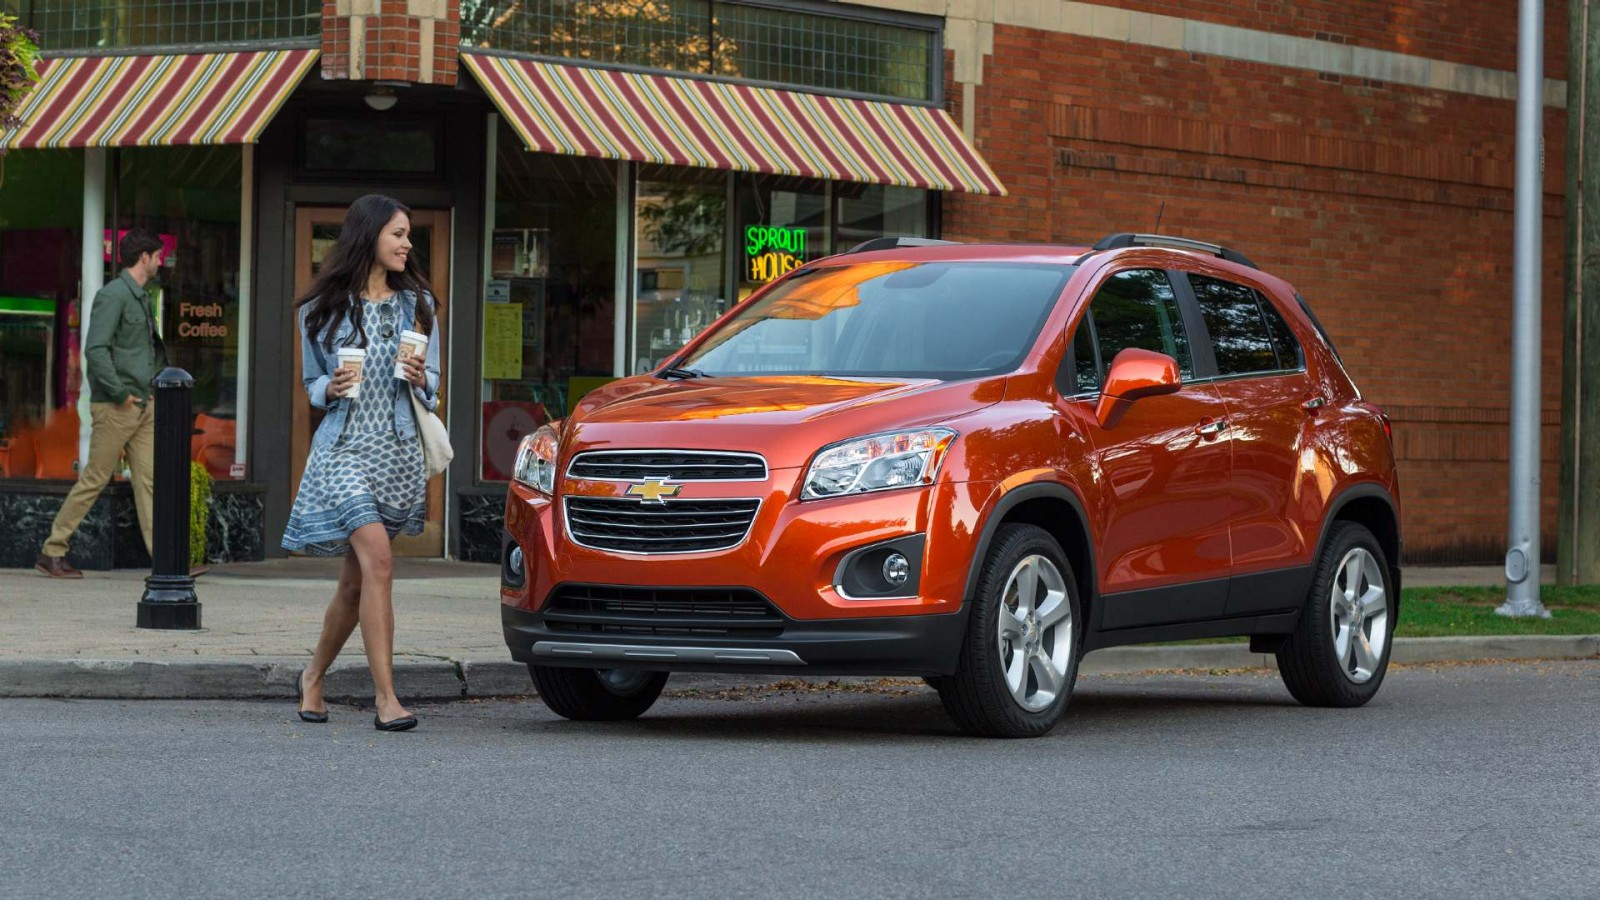 New 2016 Chevrolet Trax in Park Ridge Illinois